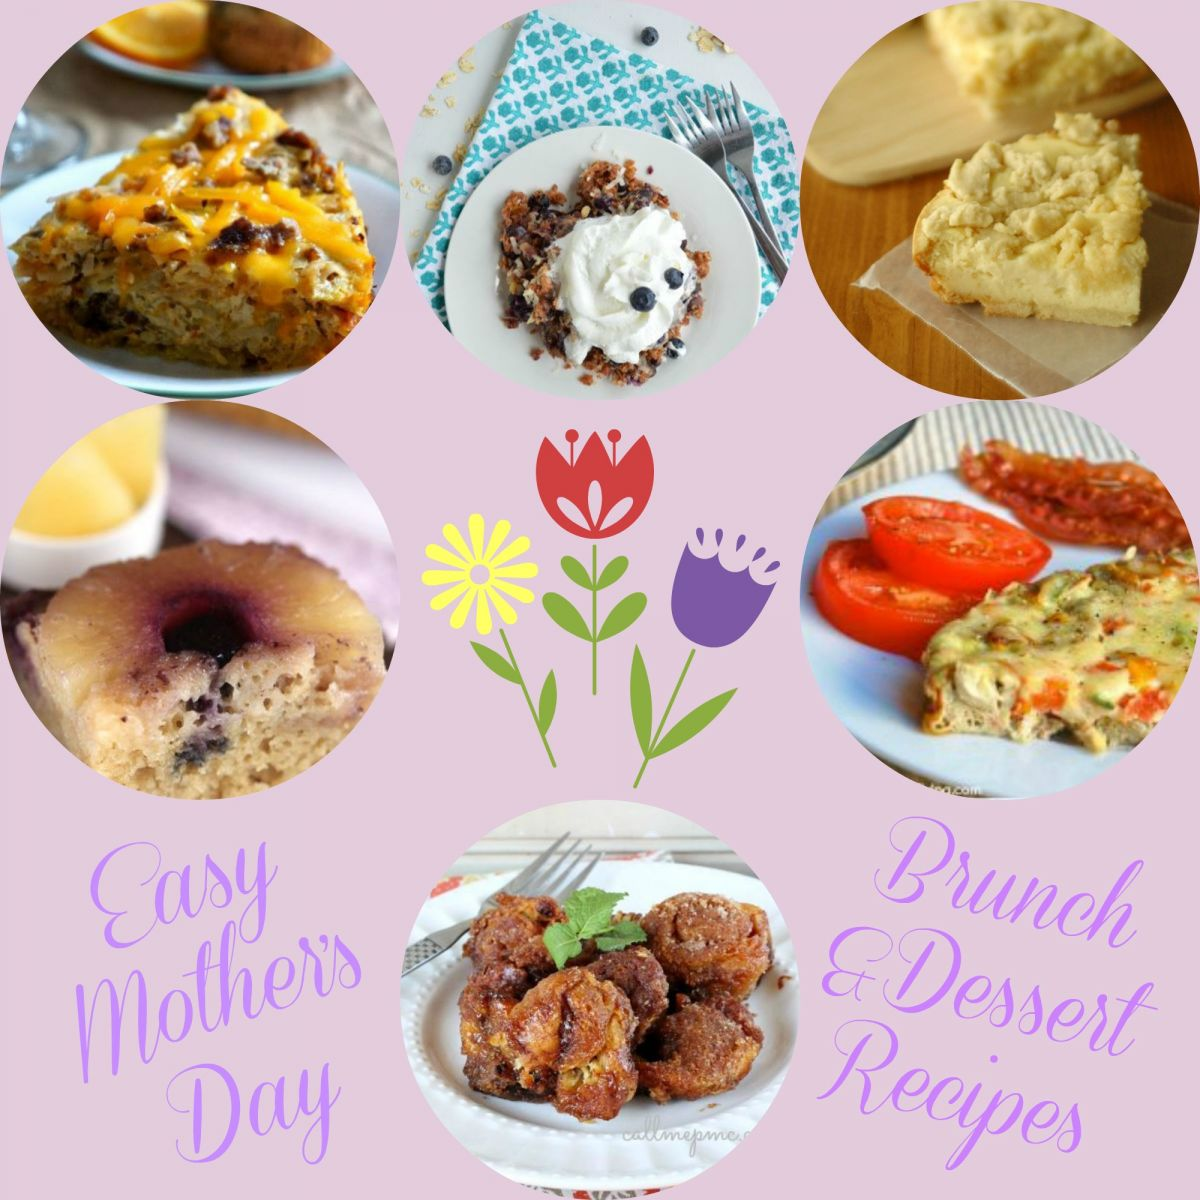 Easy Mother's Day Brunch Recipes